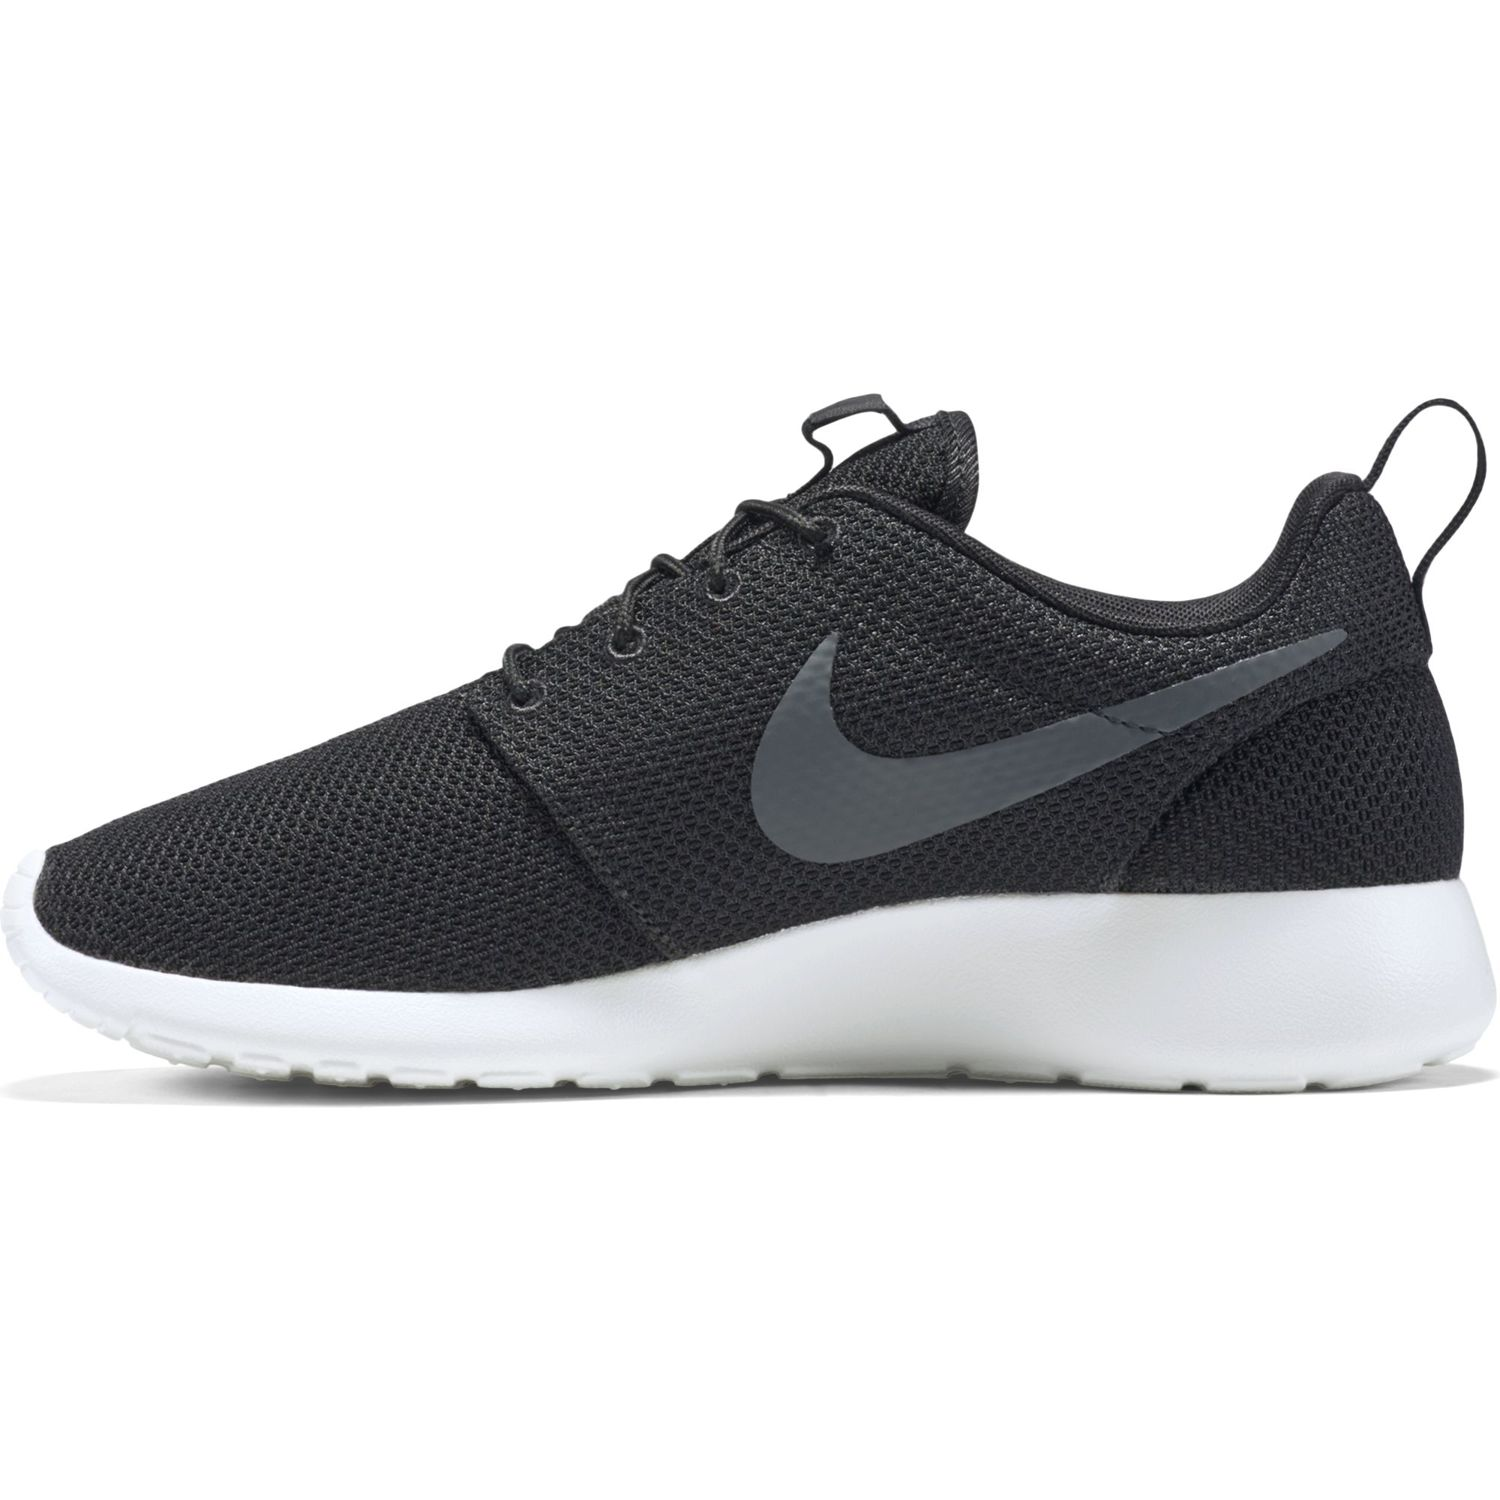 Nike Roshe One Black/White 511881 010